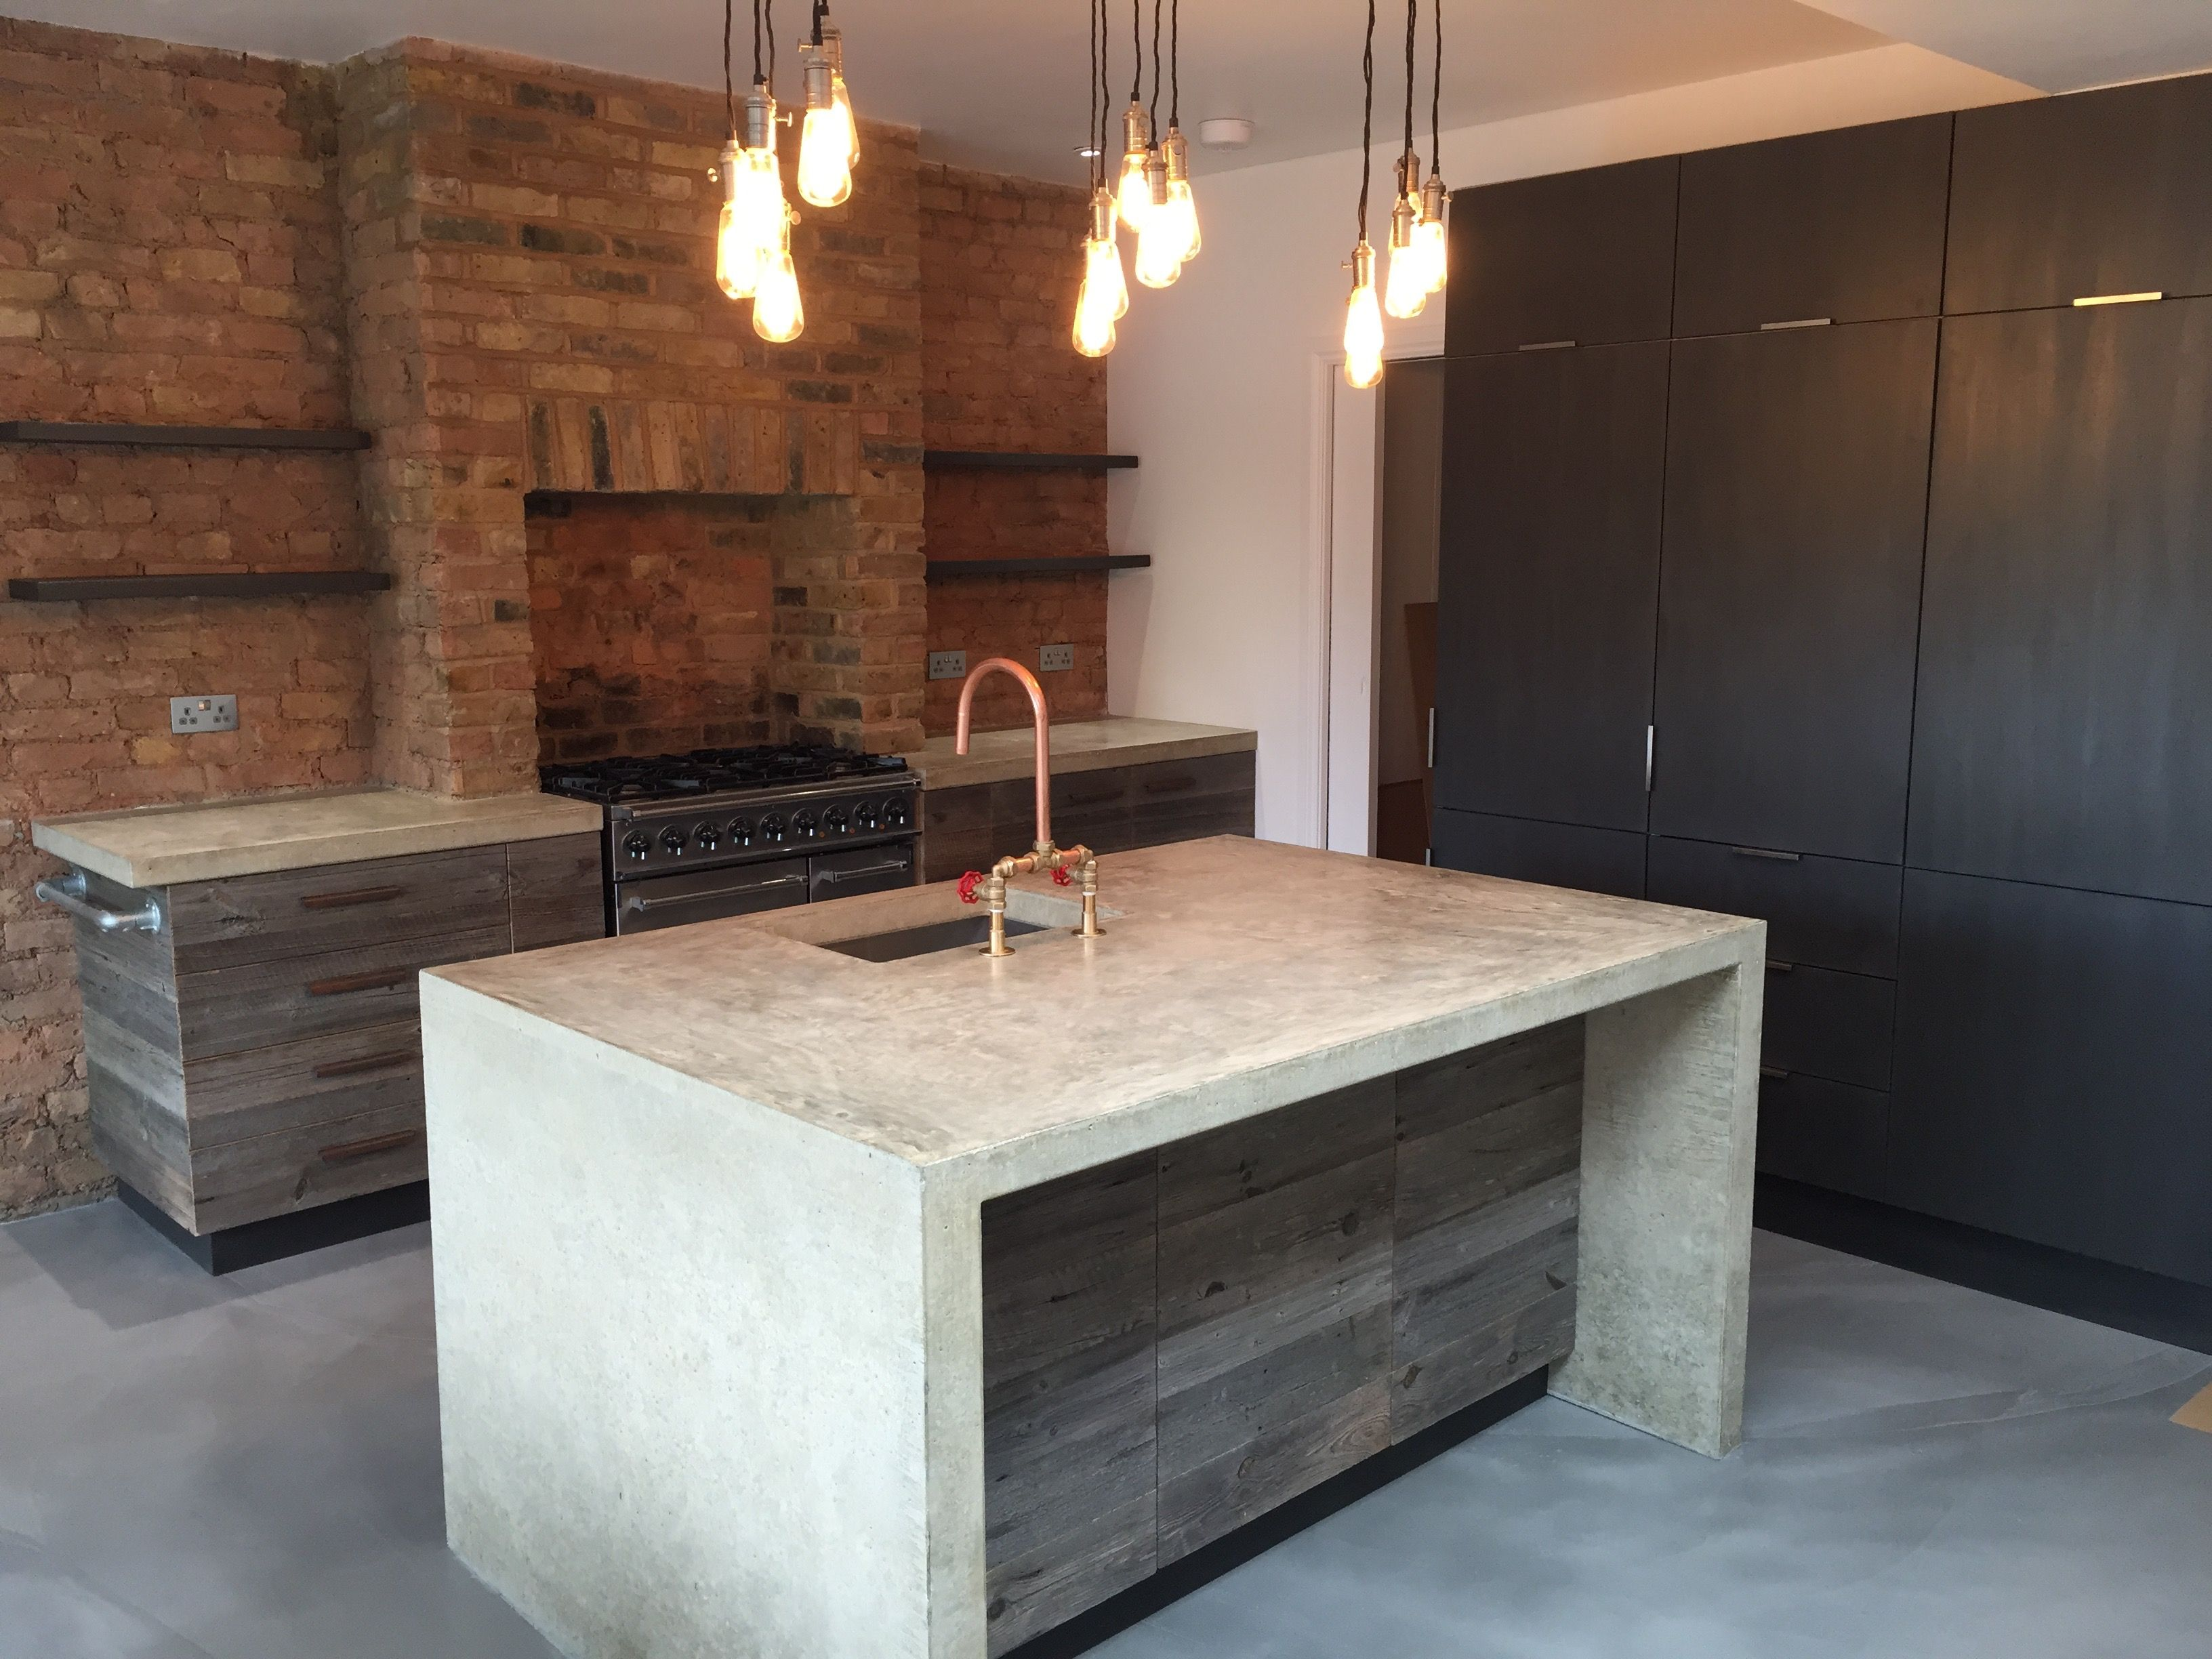 London kitchen project with cast in-situ polished concrete island ...